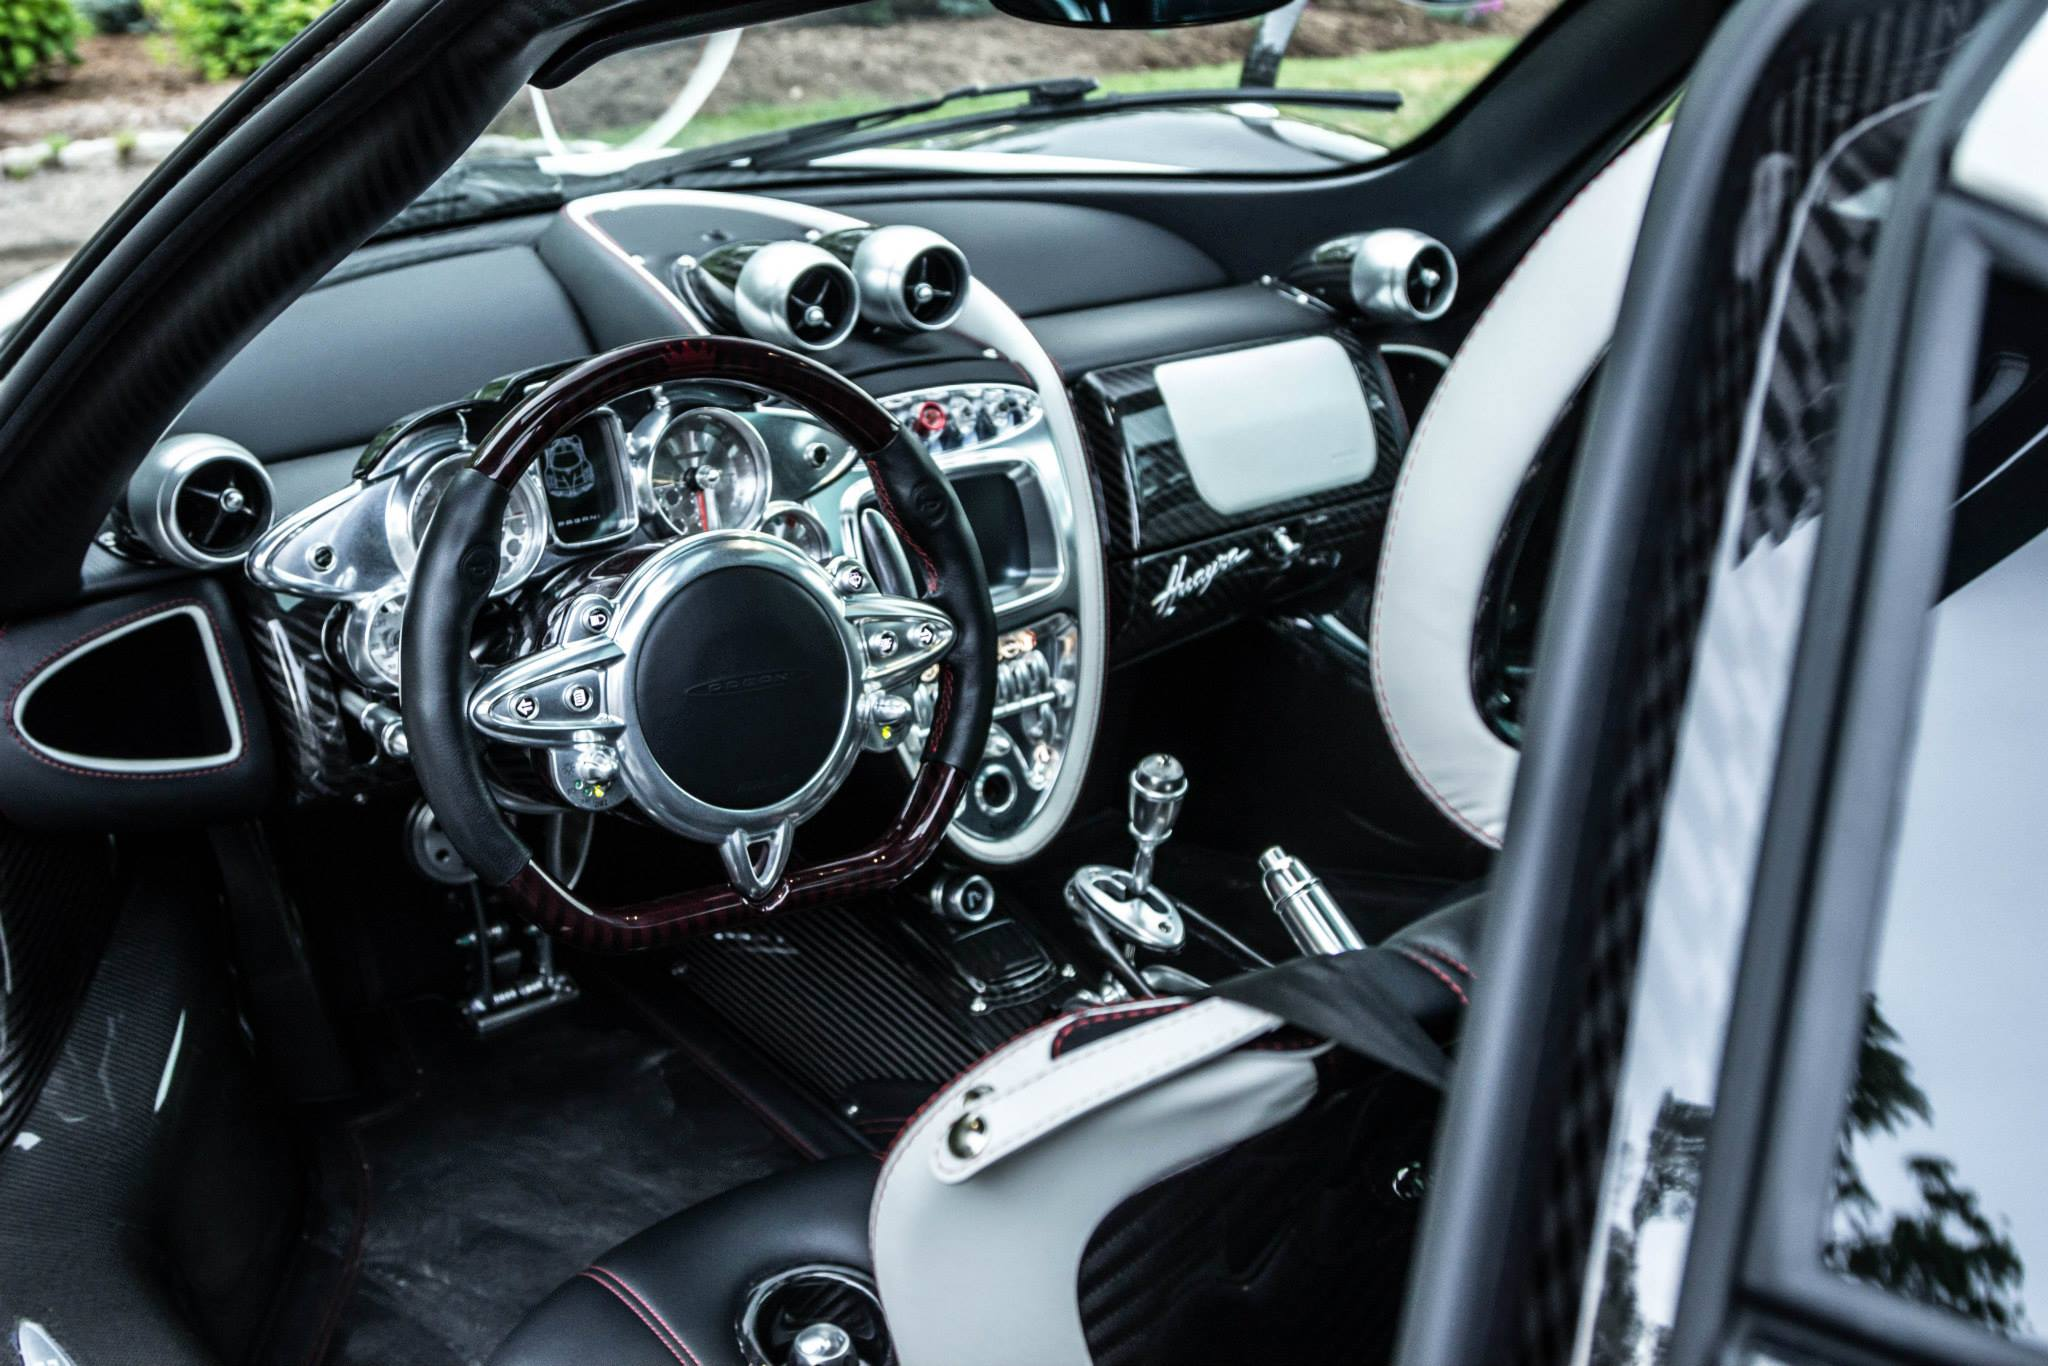 1 of 1 of 1 pagani huayra interior photo size 2048 x 1366 nr 12 15. Black Bedroom Furniture Sets. Home Design Ideas